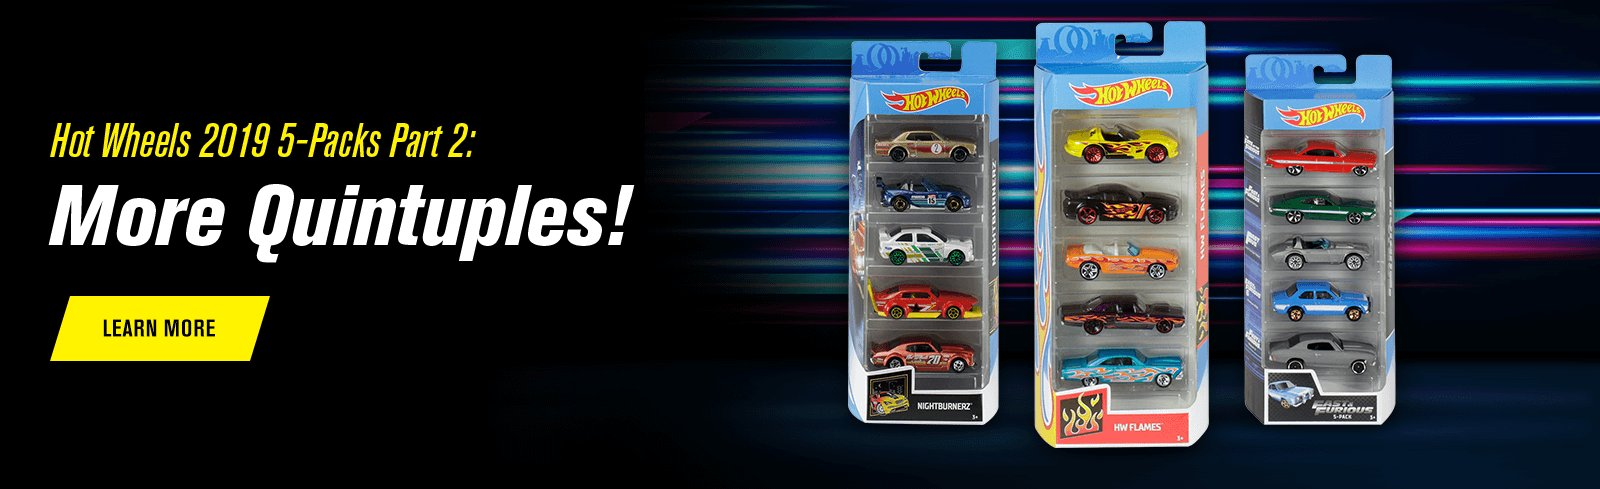 Hot Wheels 2019 5-Packs Part 2: More Quintuples!